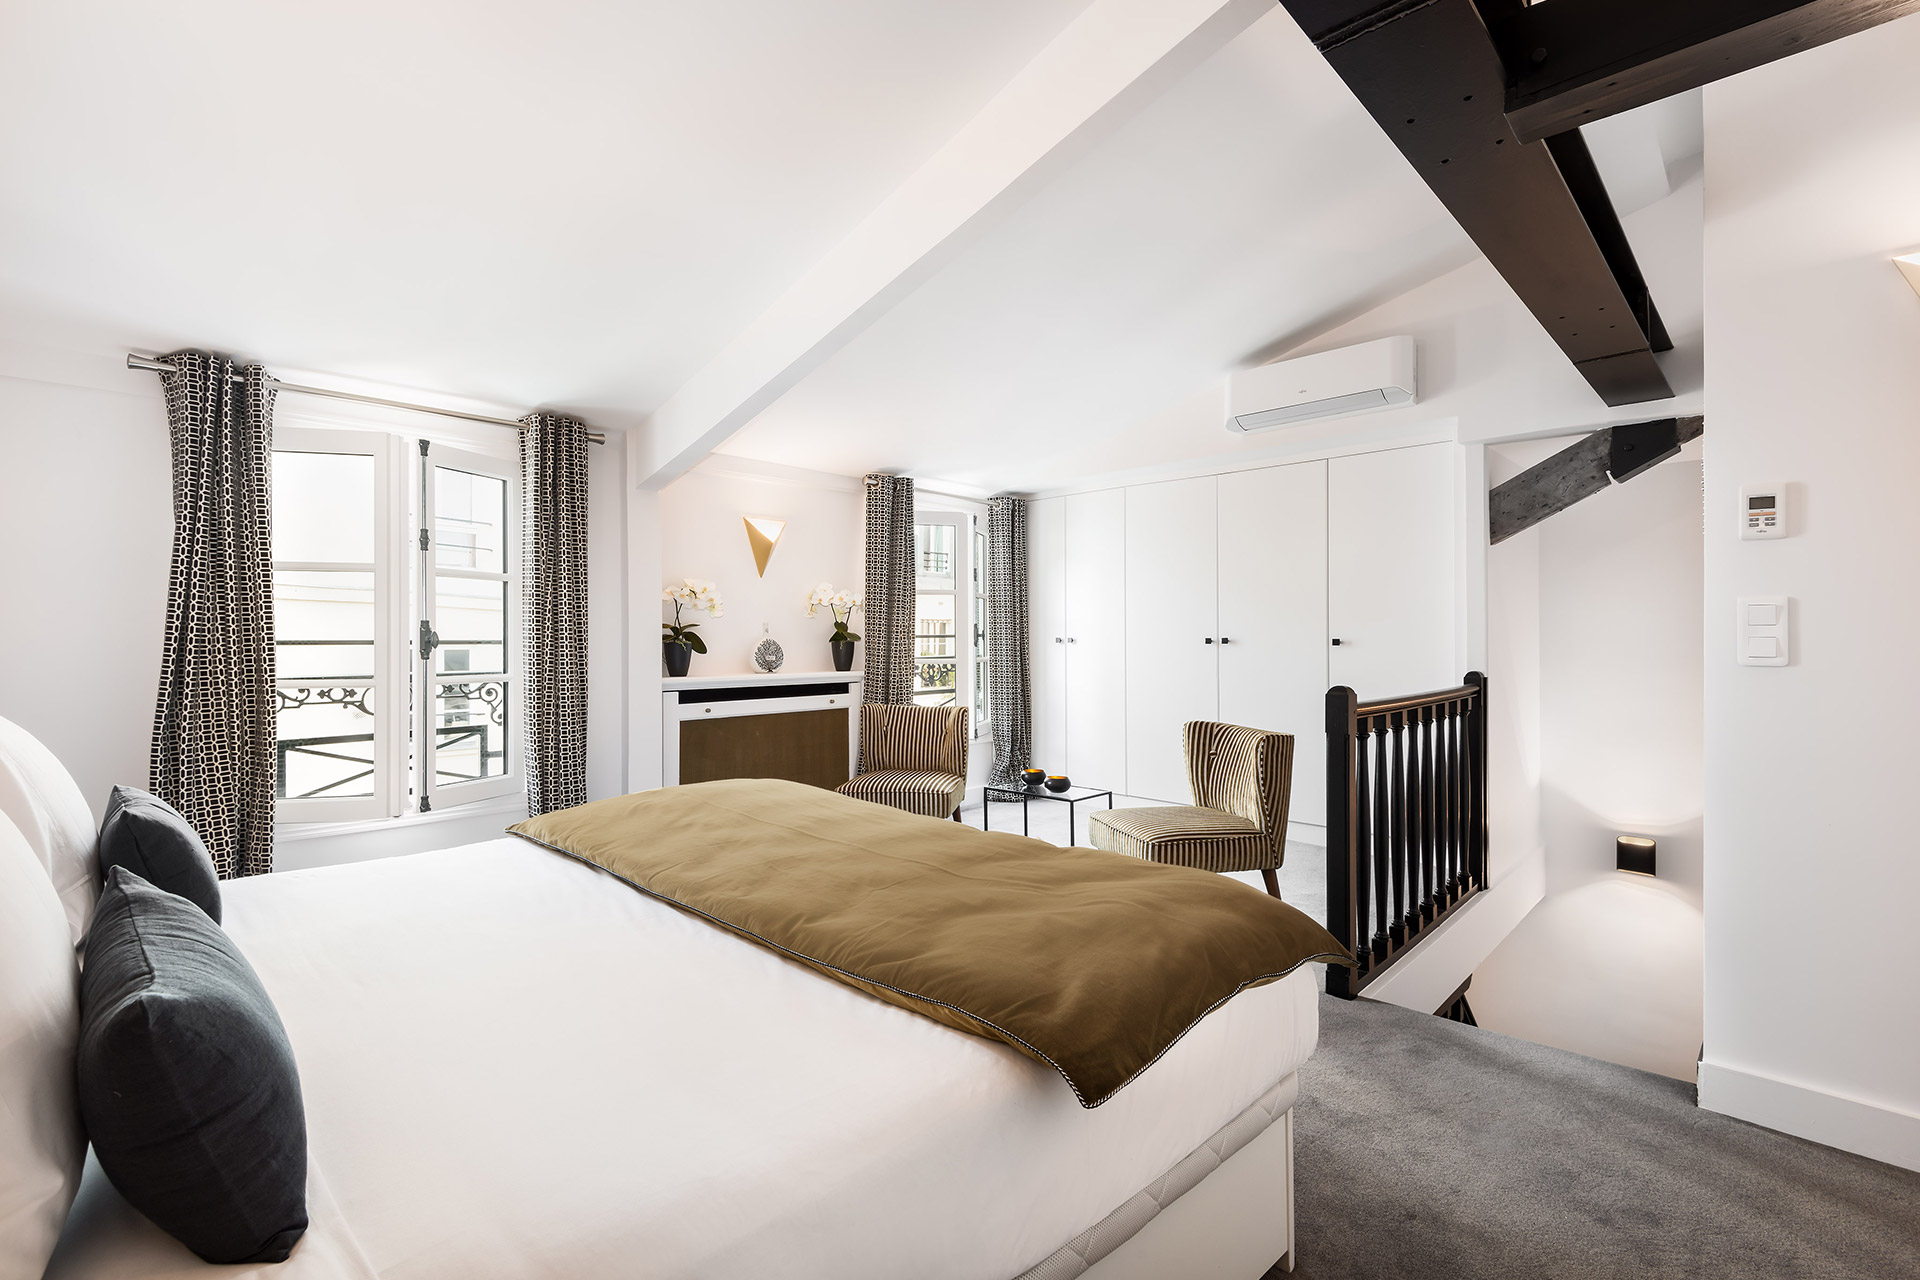 Luxurious bedroom 3 in the Chevalier vacation rental by Paris Perfect